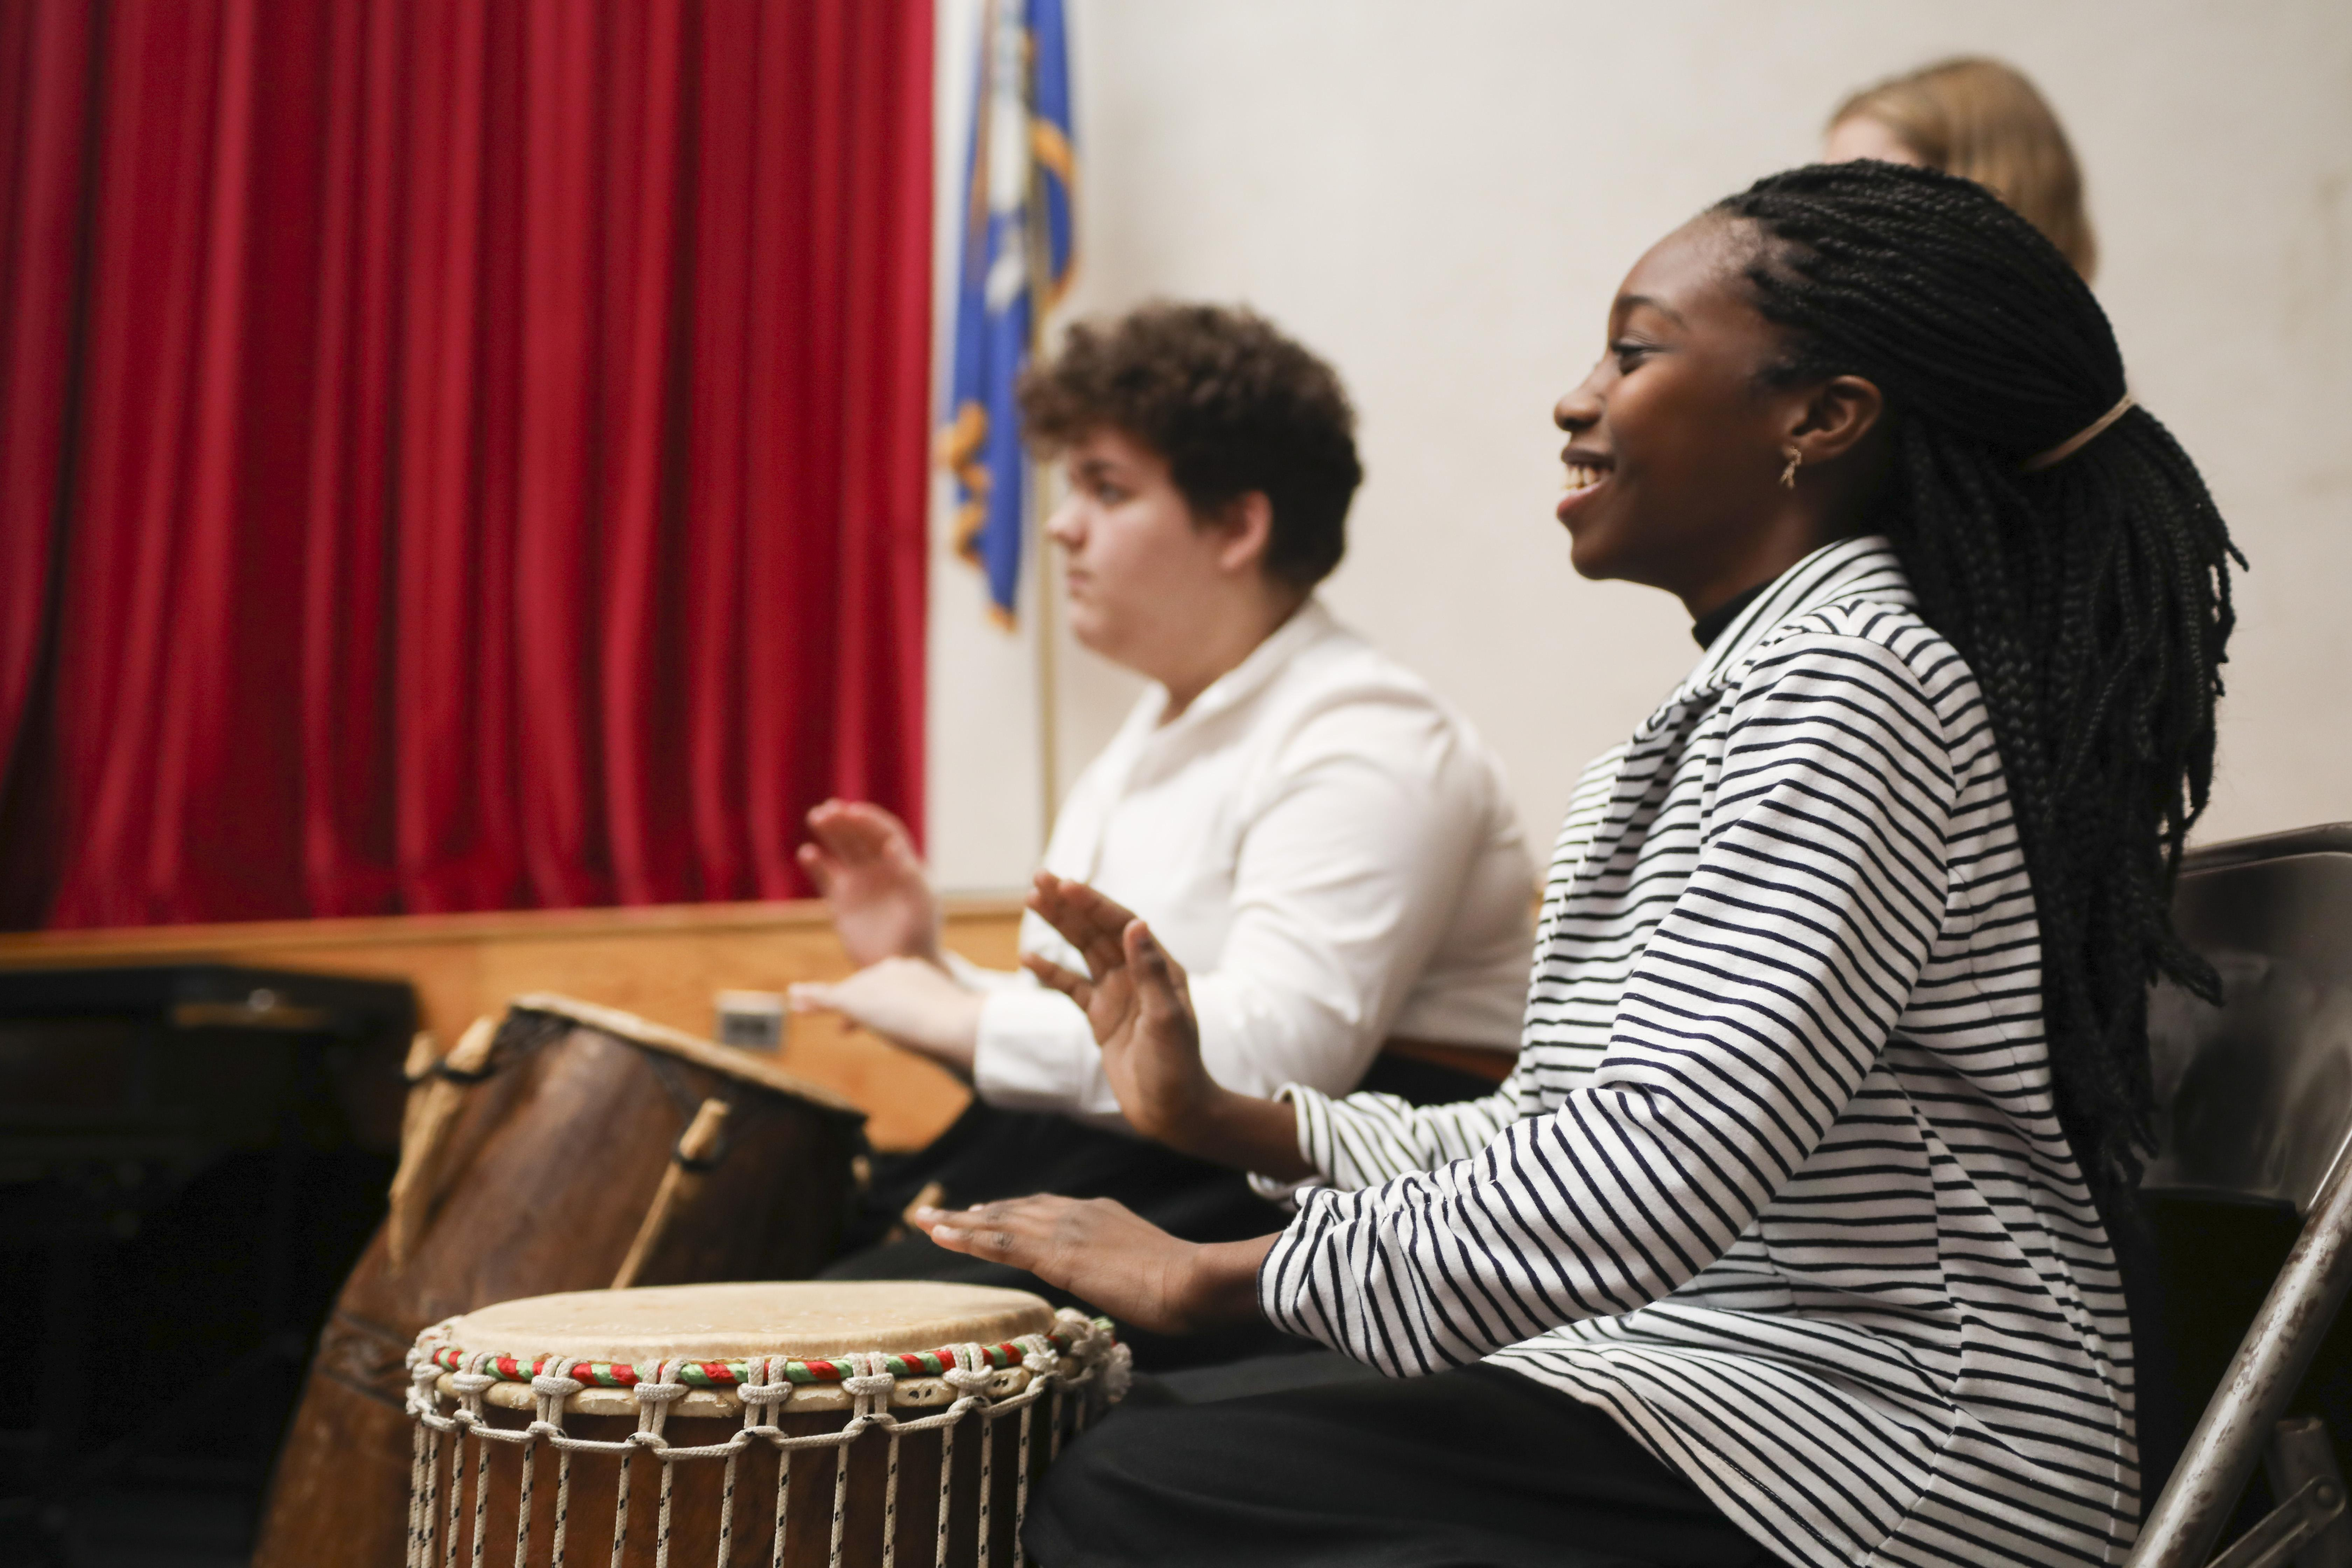 Two students drumming